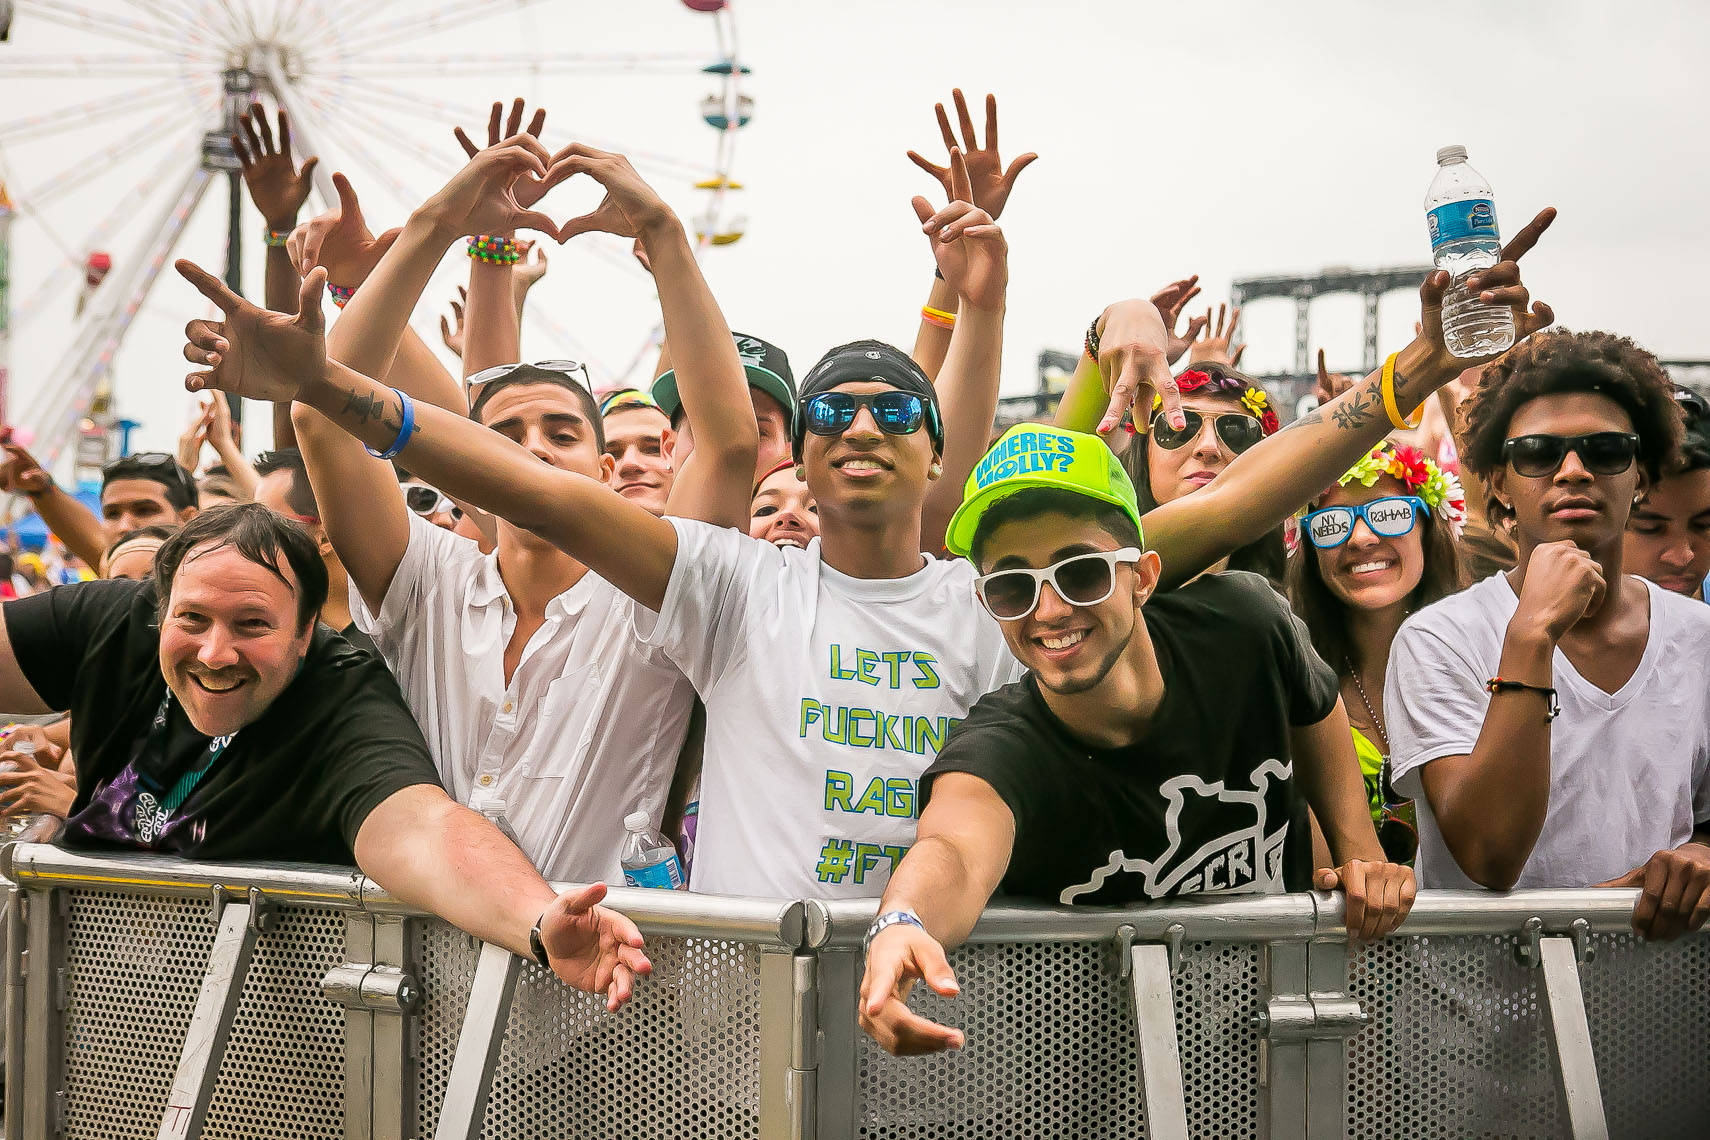 Electric Daisy Festival by lifestyle and event photographer Deborah Lowery